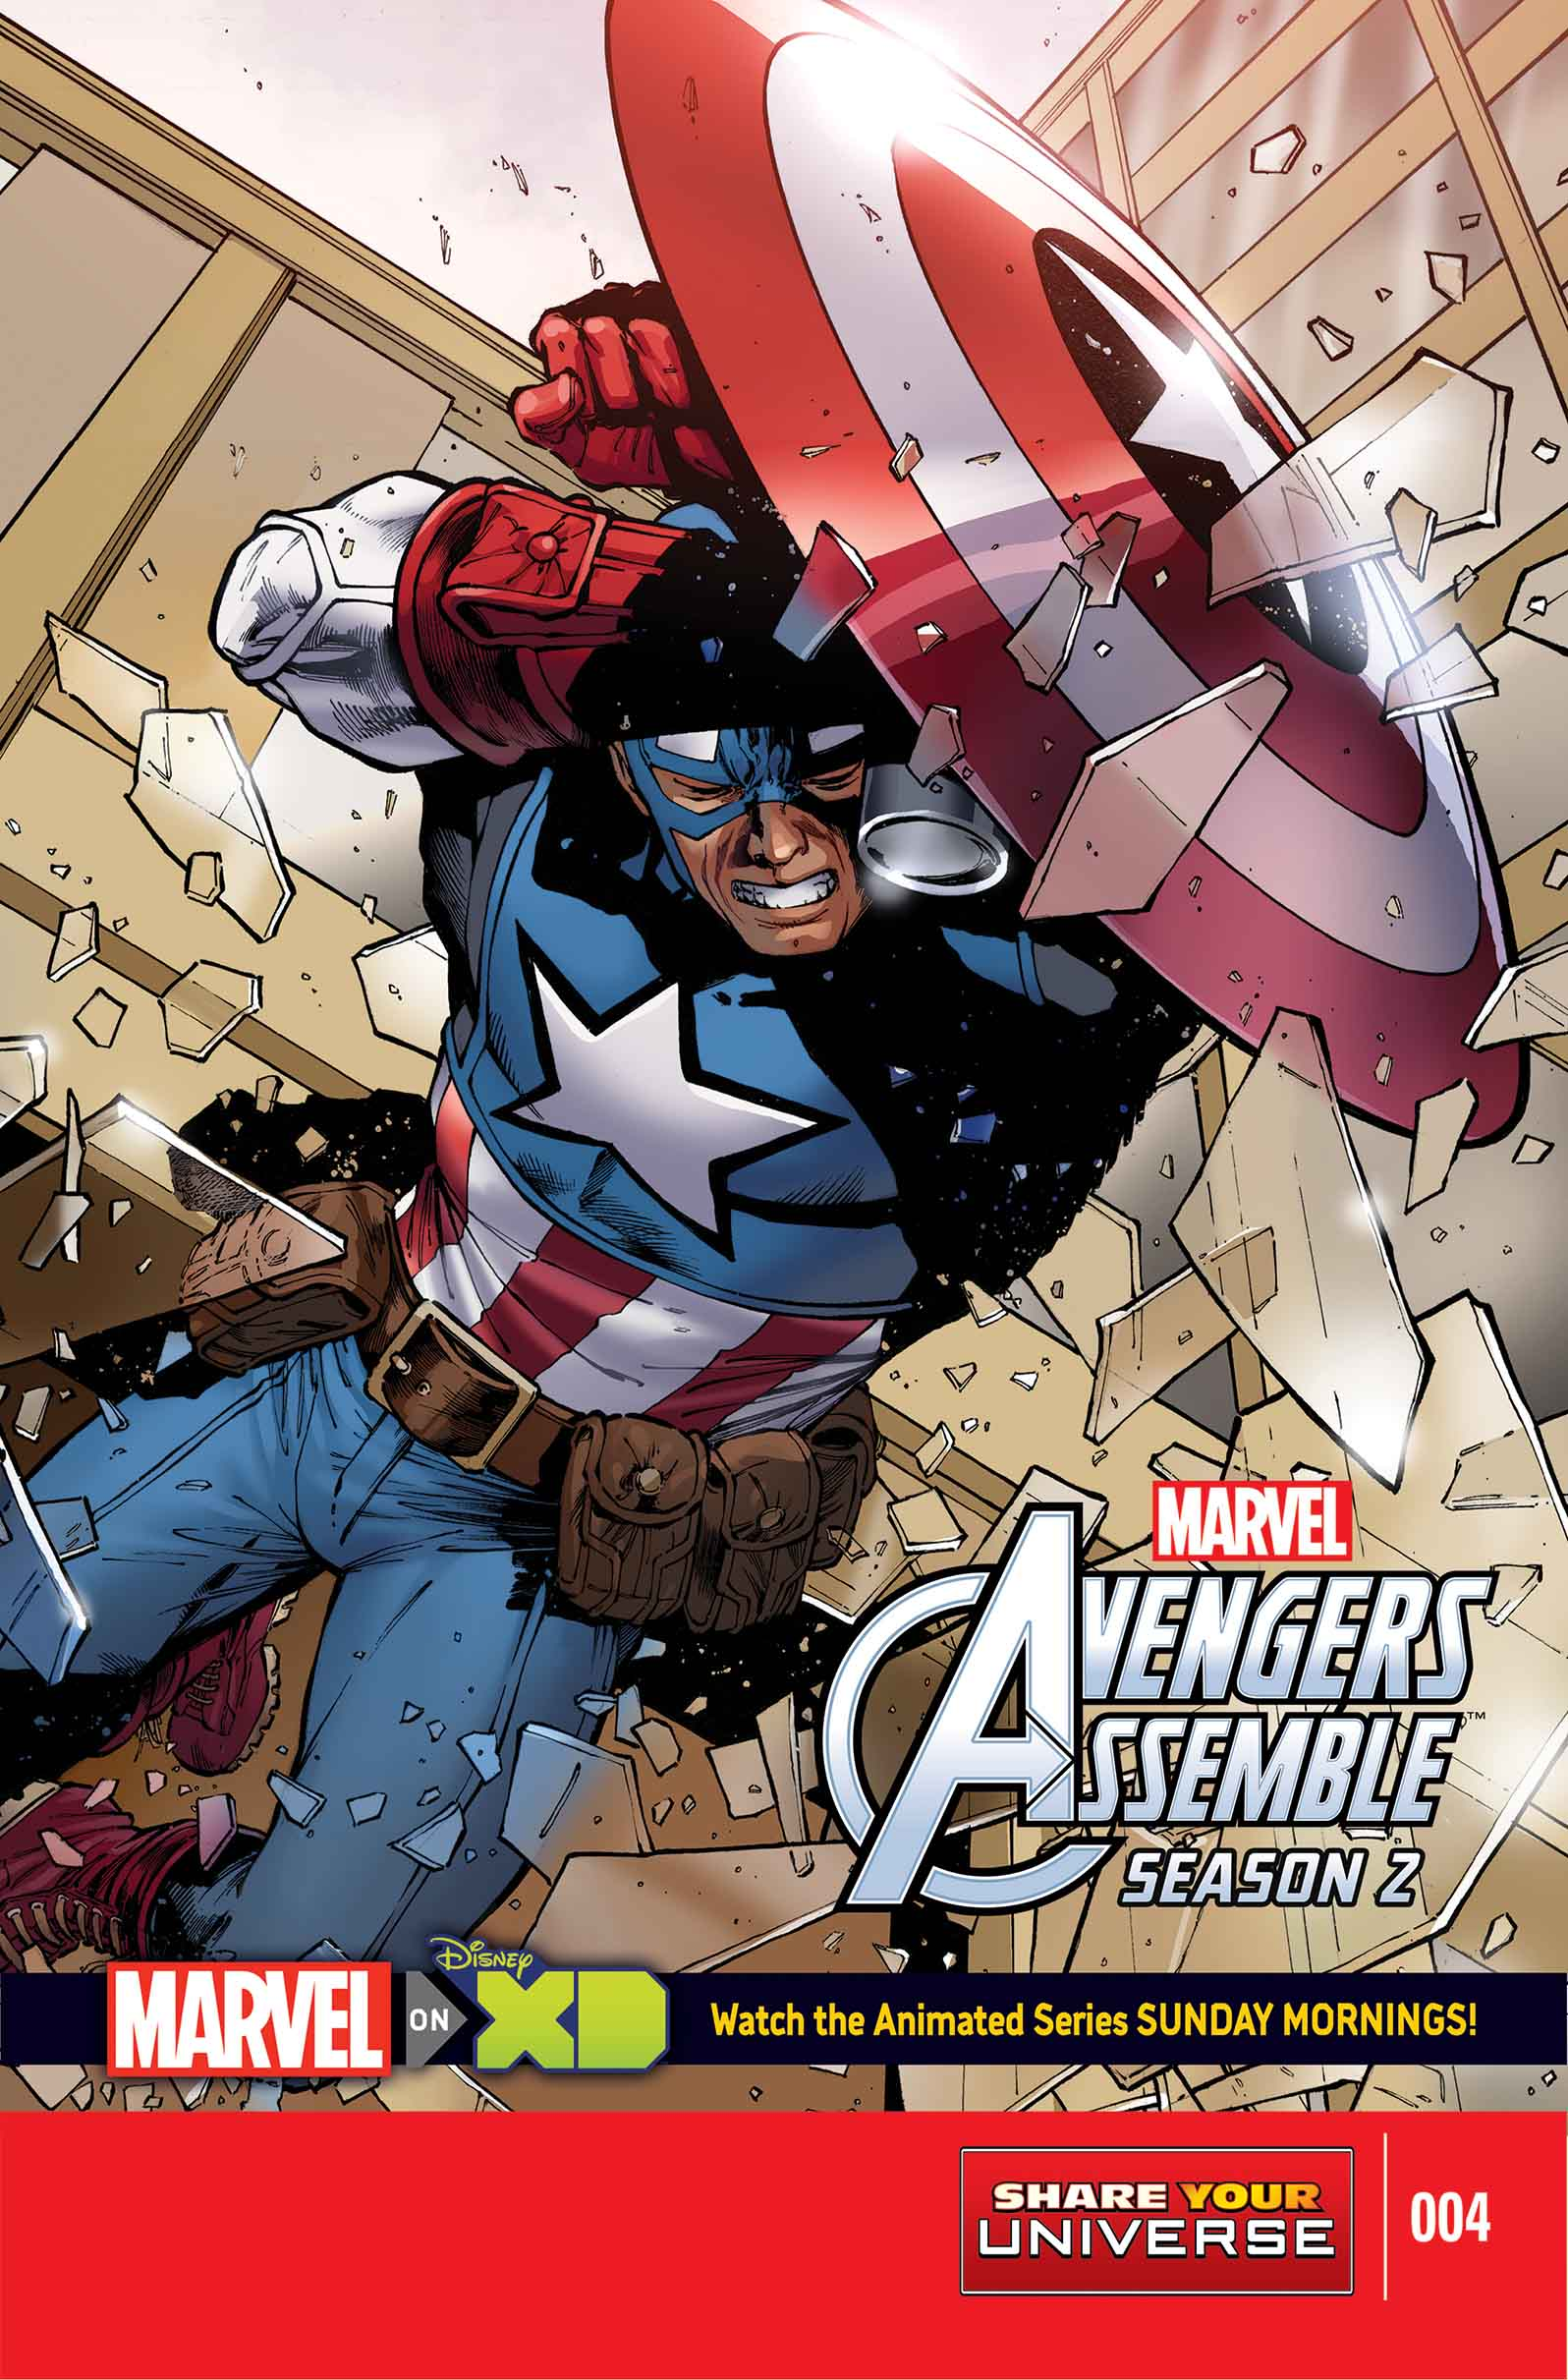 Marvel Universe Avengers Assemble Season Two (2014) #4